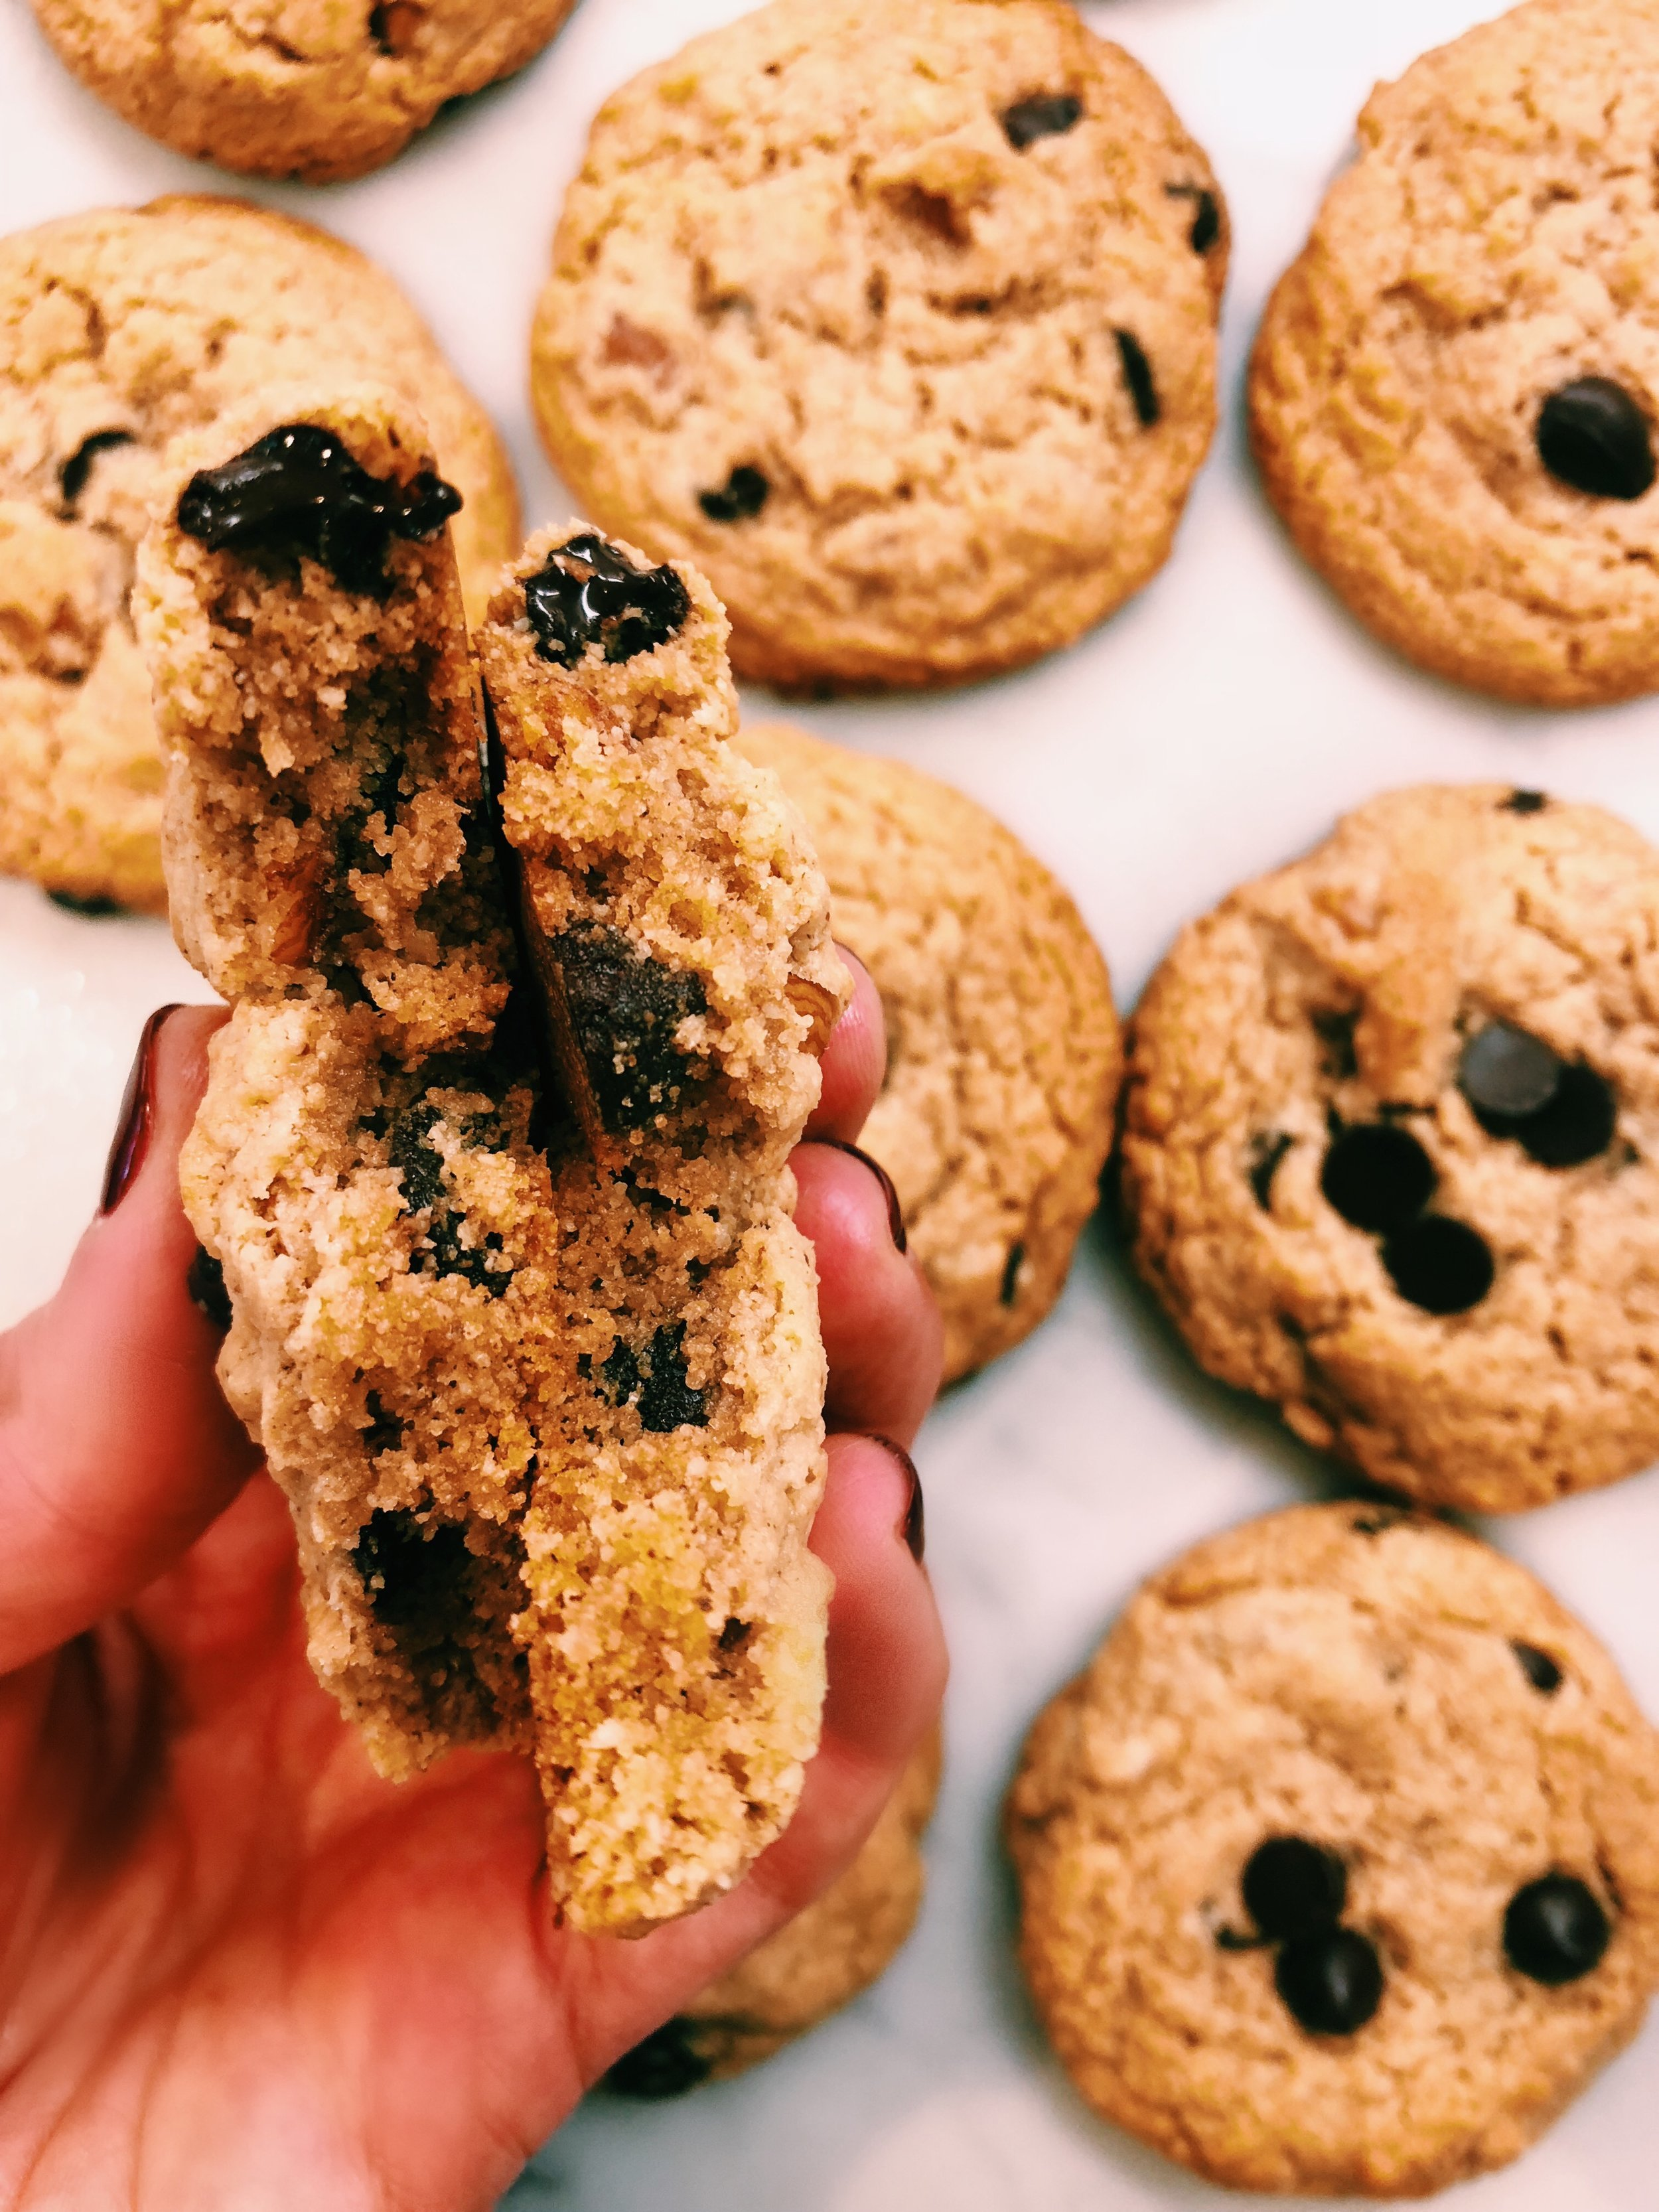 PALEO CHOCOLATE CHIP HAZELNUT COOKIES - INGREDIENTS1/4 cup melted coconut oil1/4 cup maple syrup1/4 cup nut butter of choice (I used Georgia Grinders, but any will do!)1 tsp vanilla extract2 tb dairy-free milk (I used Elmhurst1925 Unsweetened Hazelnut milk, but again, any will do!)1 cup + 4 tb almond flour (Bob's Red Mill fine almond flour)2 tb coconut flour (Bob's Red Mill coconut flour)1/4 tsp salt3/4 tsp baking soda1/3 cup roughly chopped hazelnuts1/2 cup Enjoy Life Foods dairy free chocolate chips